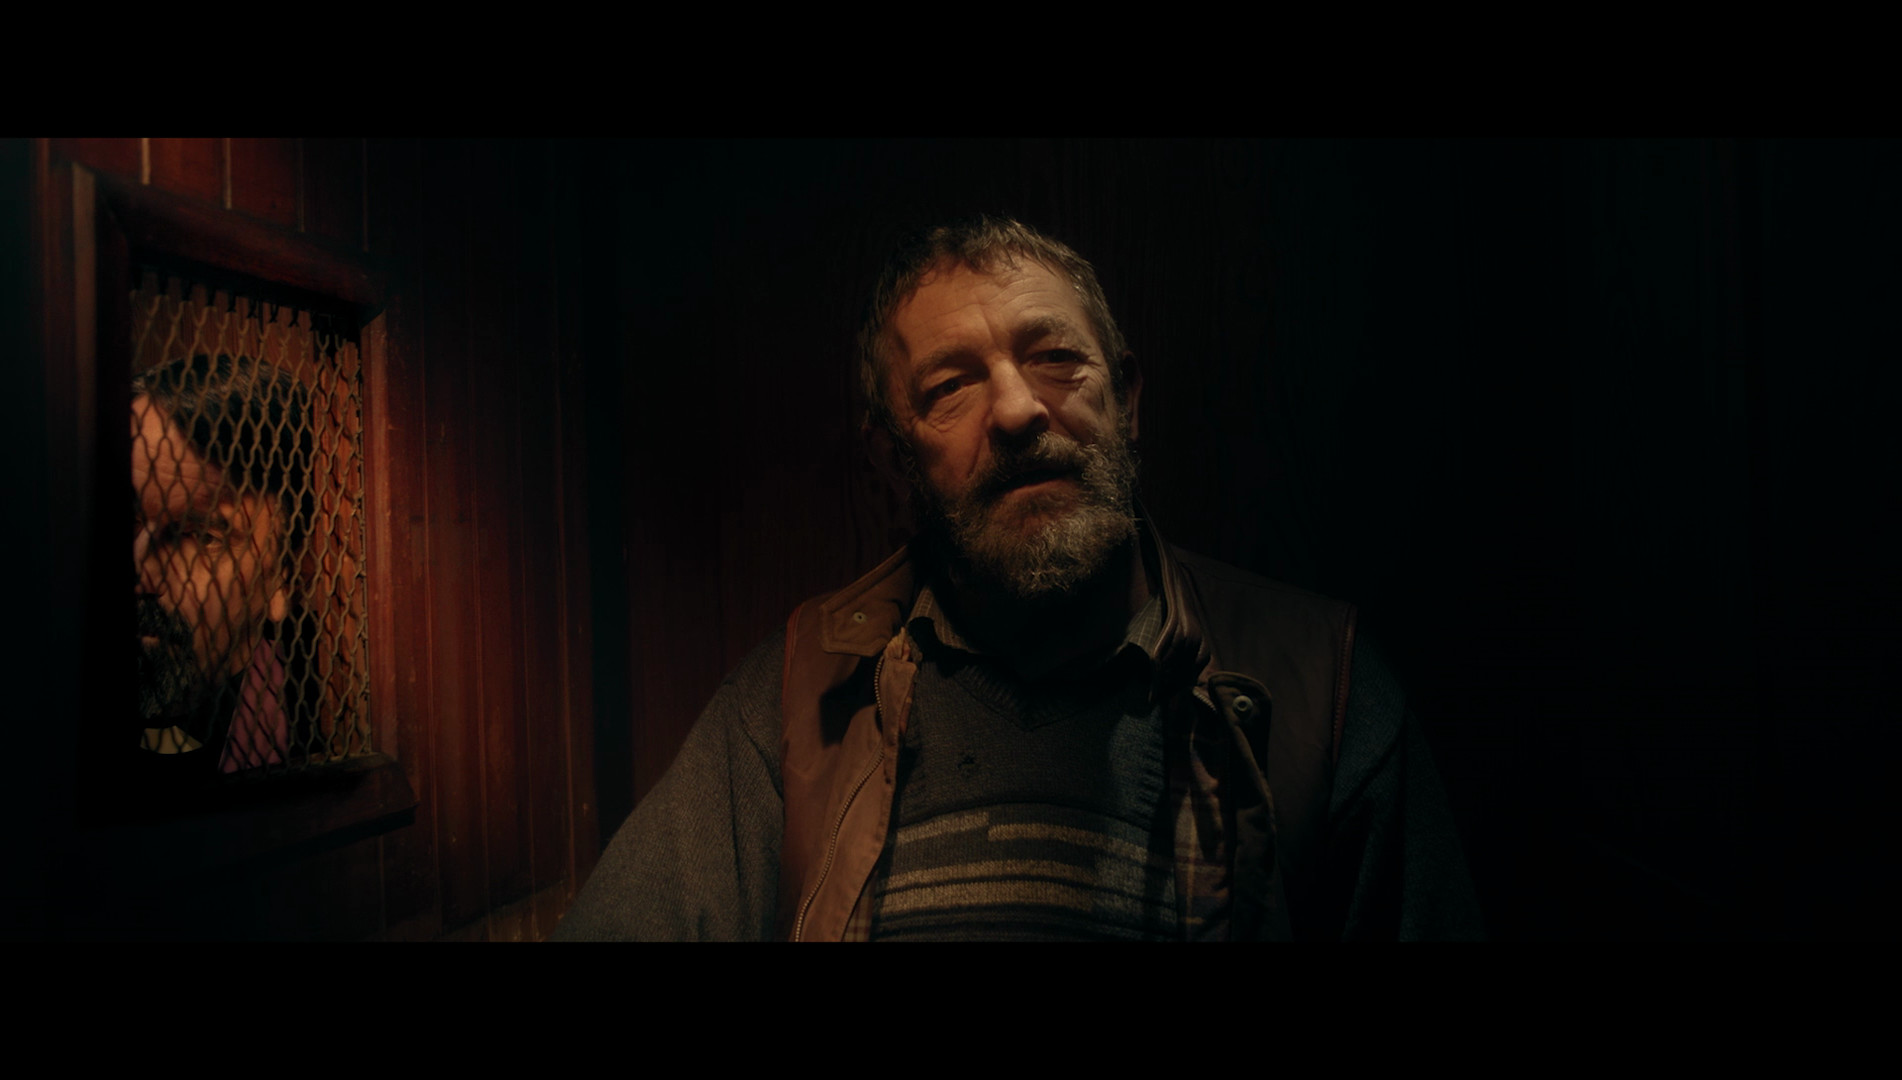 Most Inspiring Short,Bless Me Father - Thursday, March 22, 20187:30 PM | Theatre 1